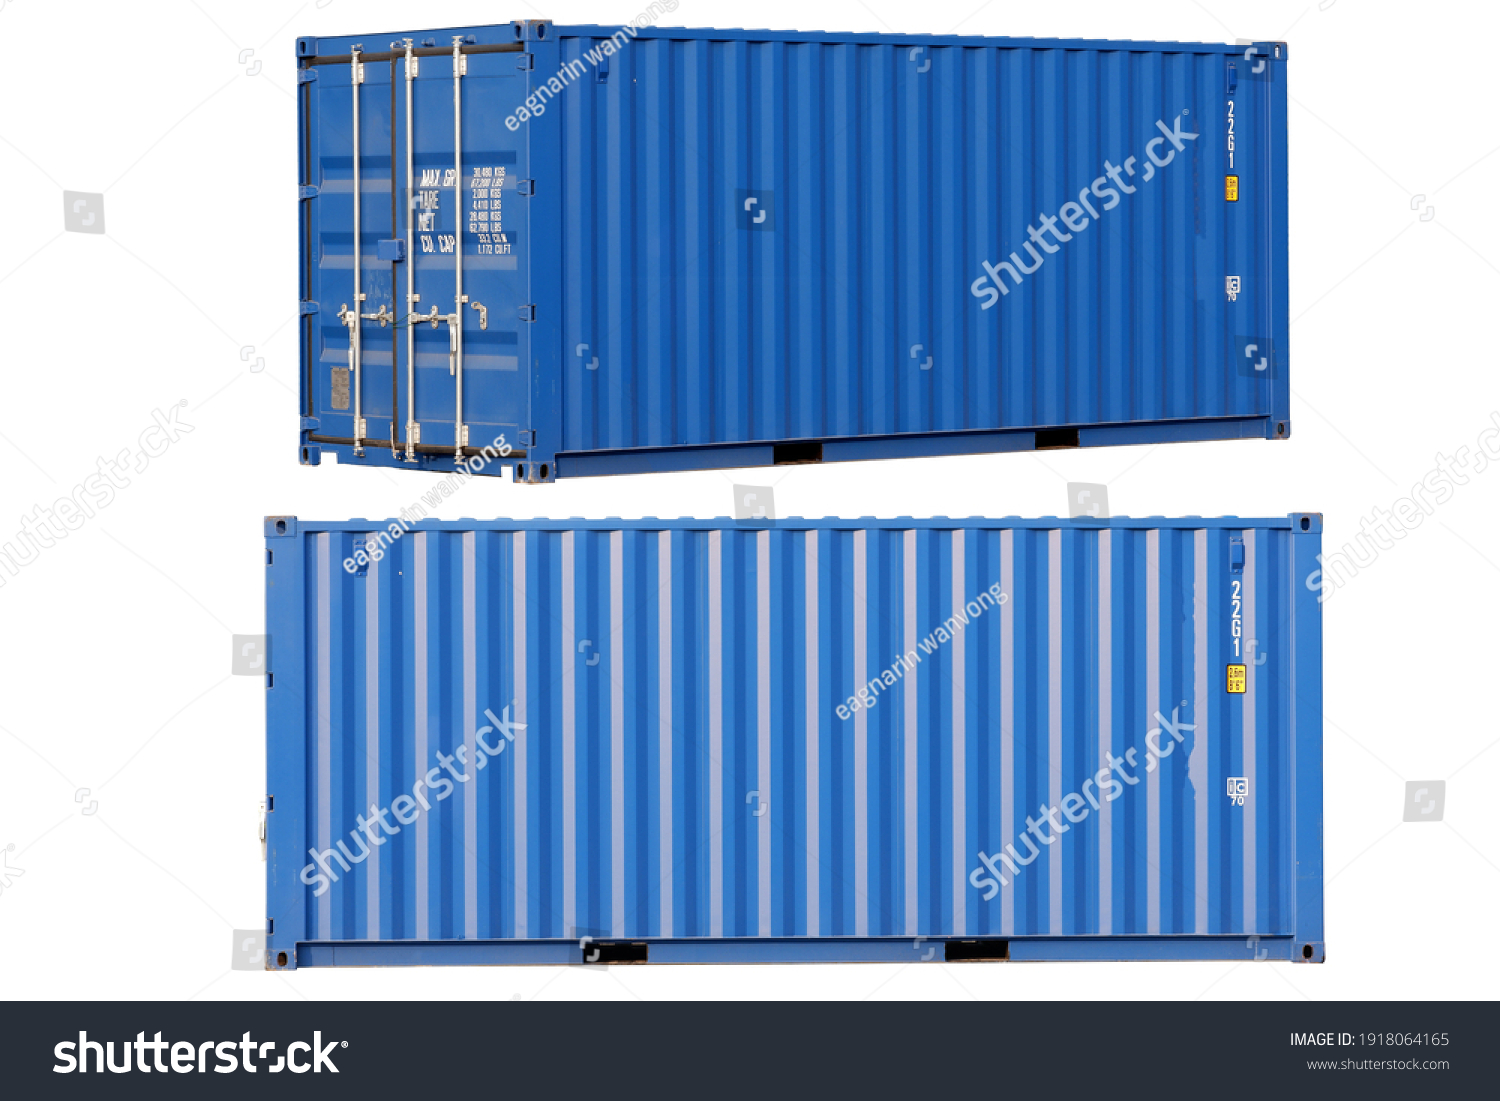 Blue container Cut the white background for easy use. #1918064165